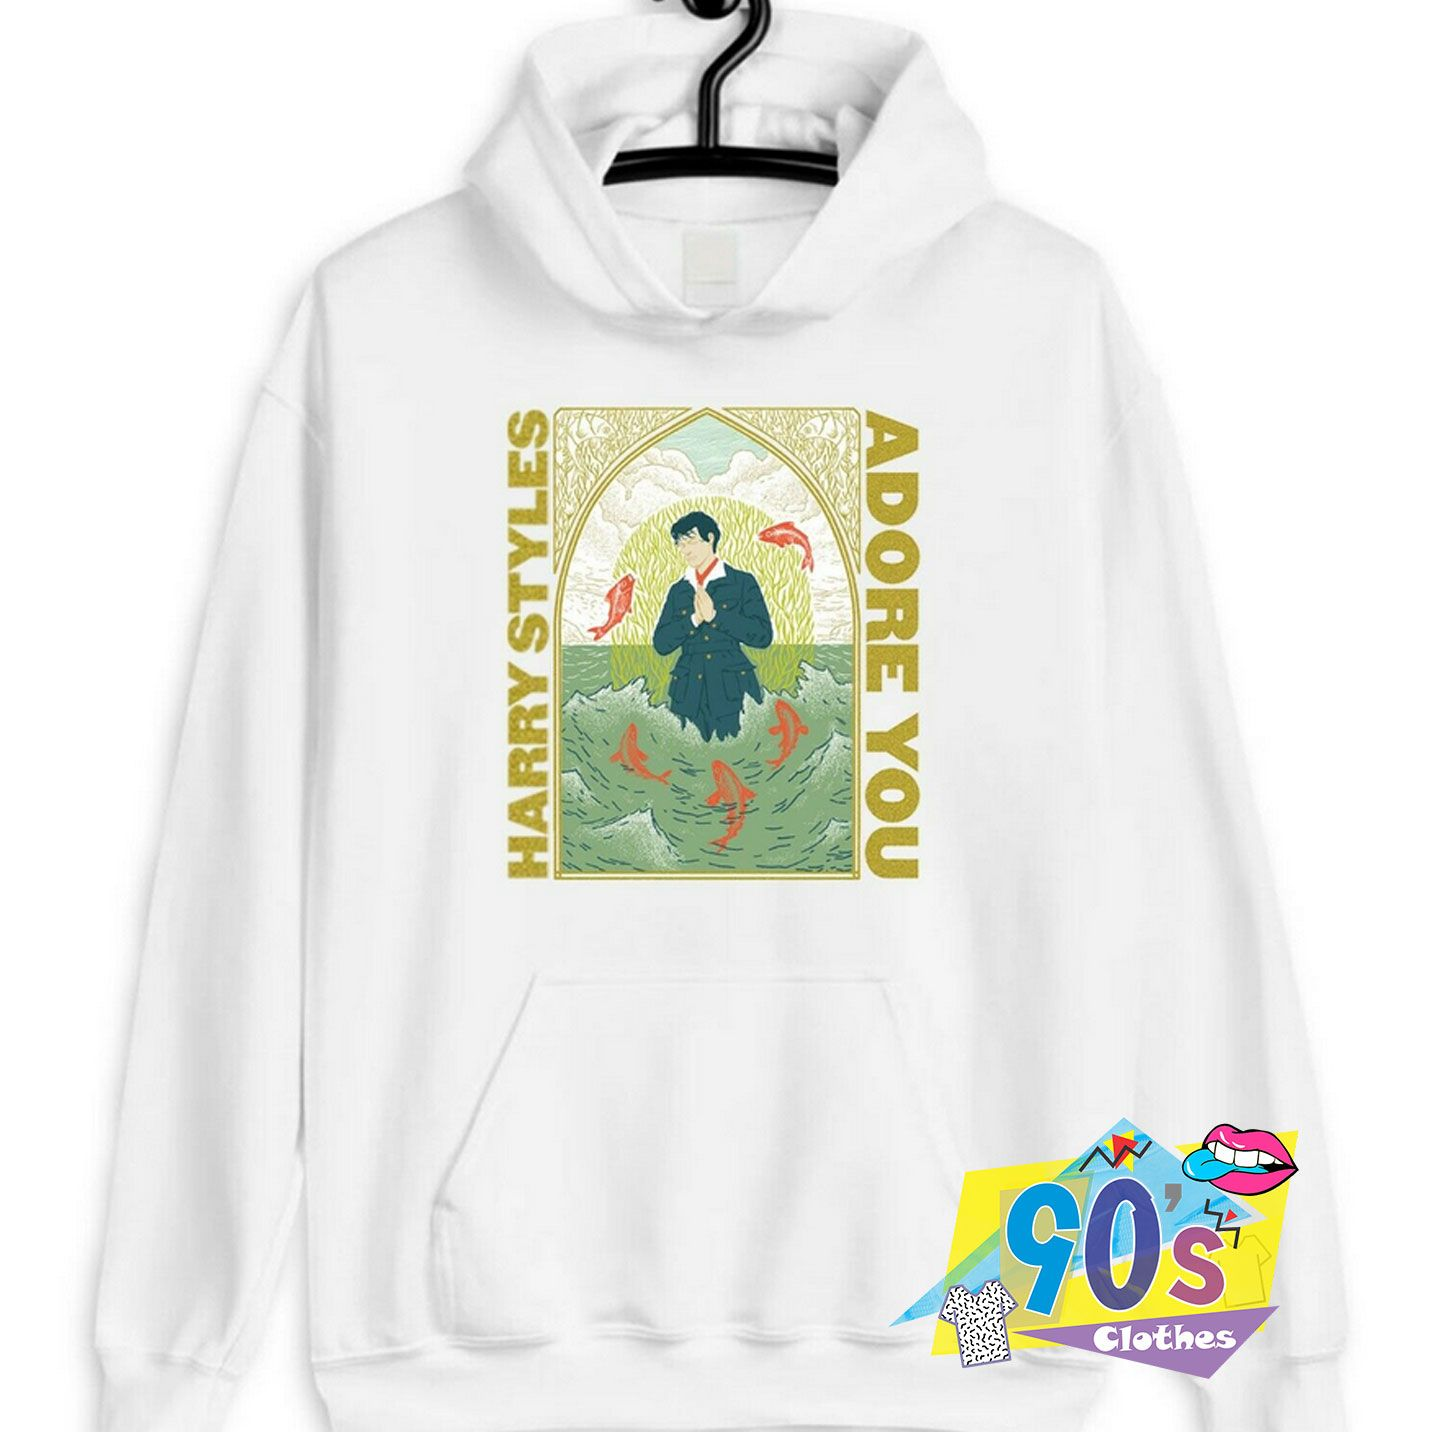 Harry Styles Adore You Hoodie 90sclothes Com In 2020 Harry Styles T Shirt Harry Styles Sweatshirt Harry Styles Shirt